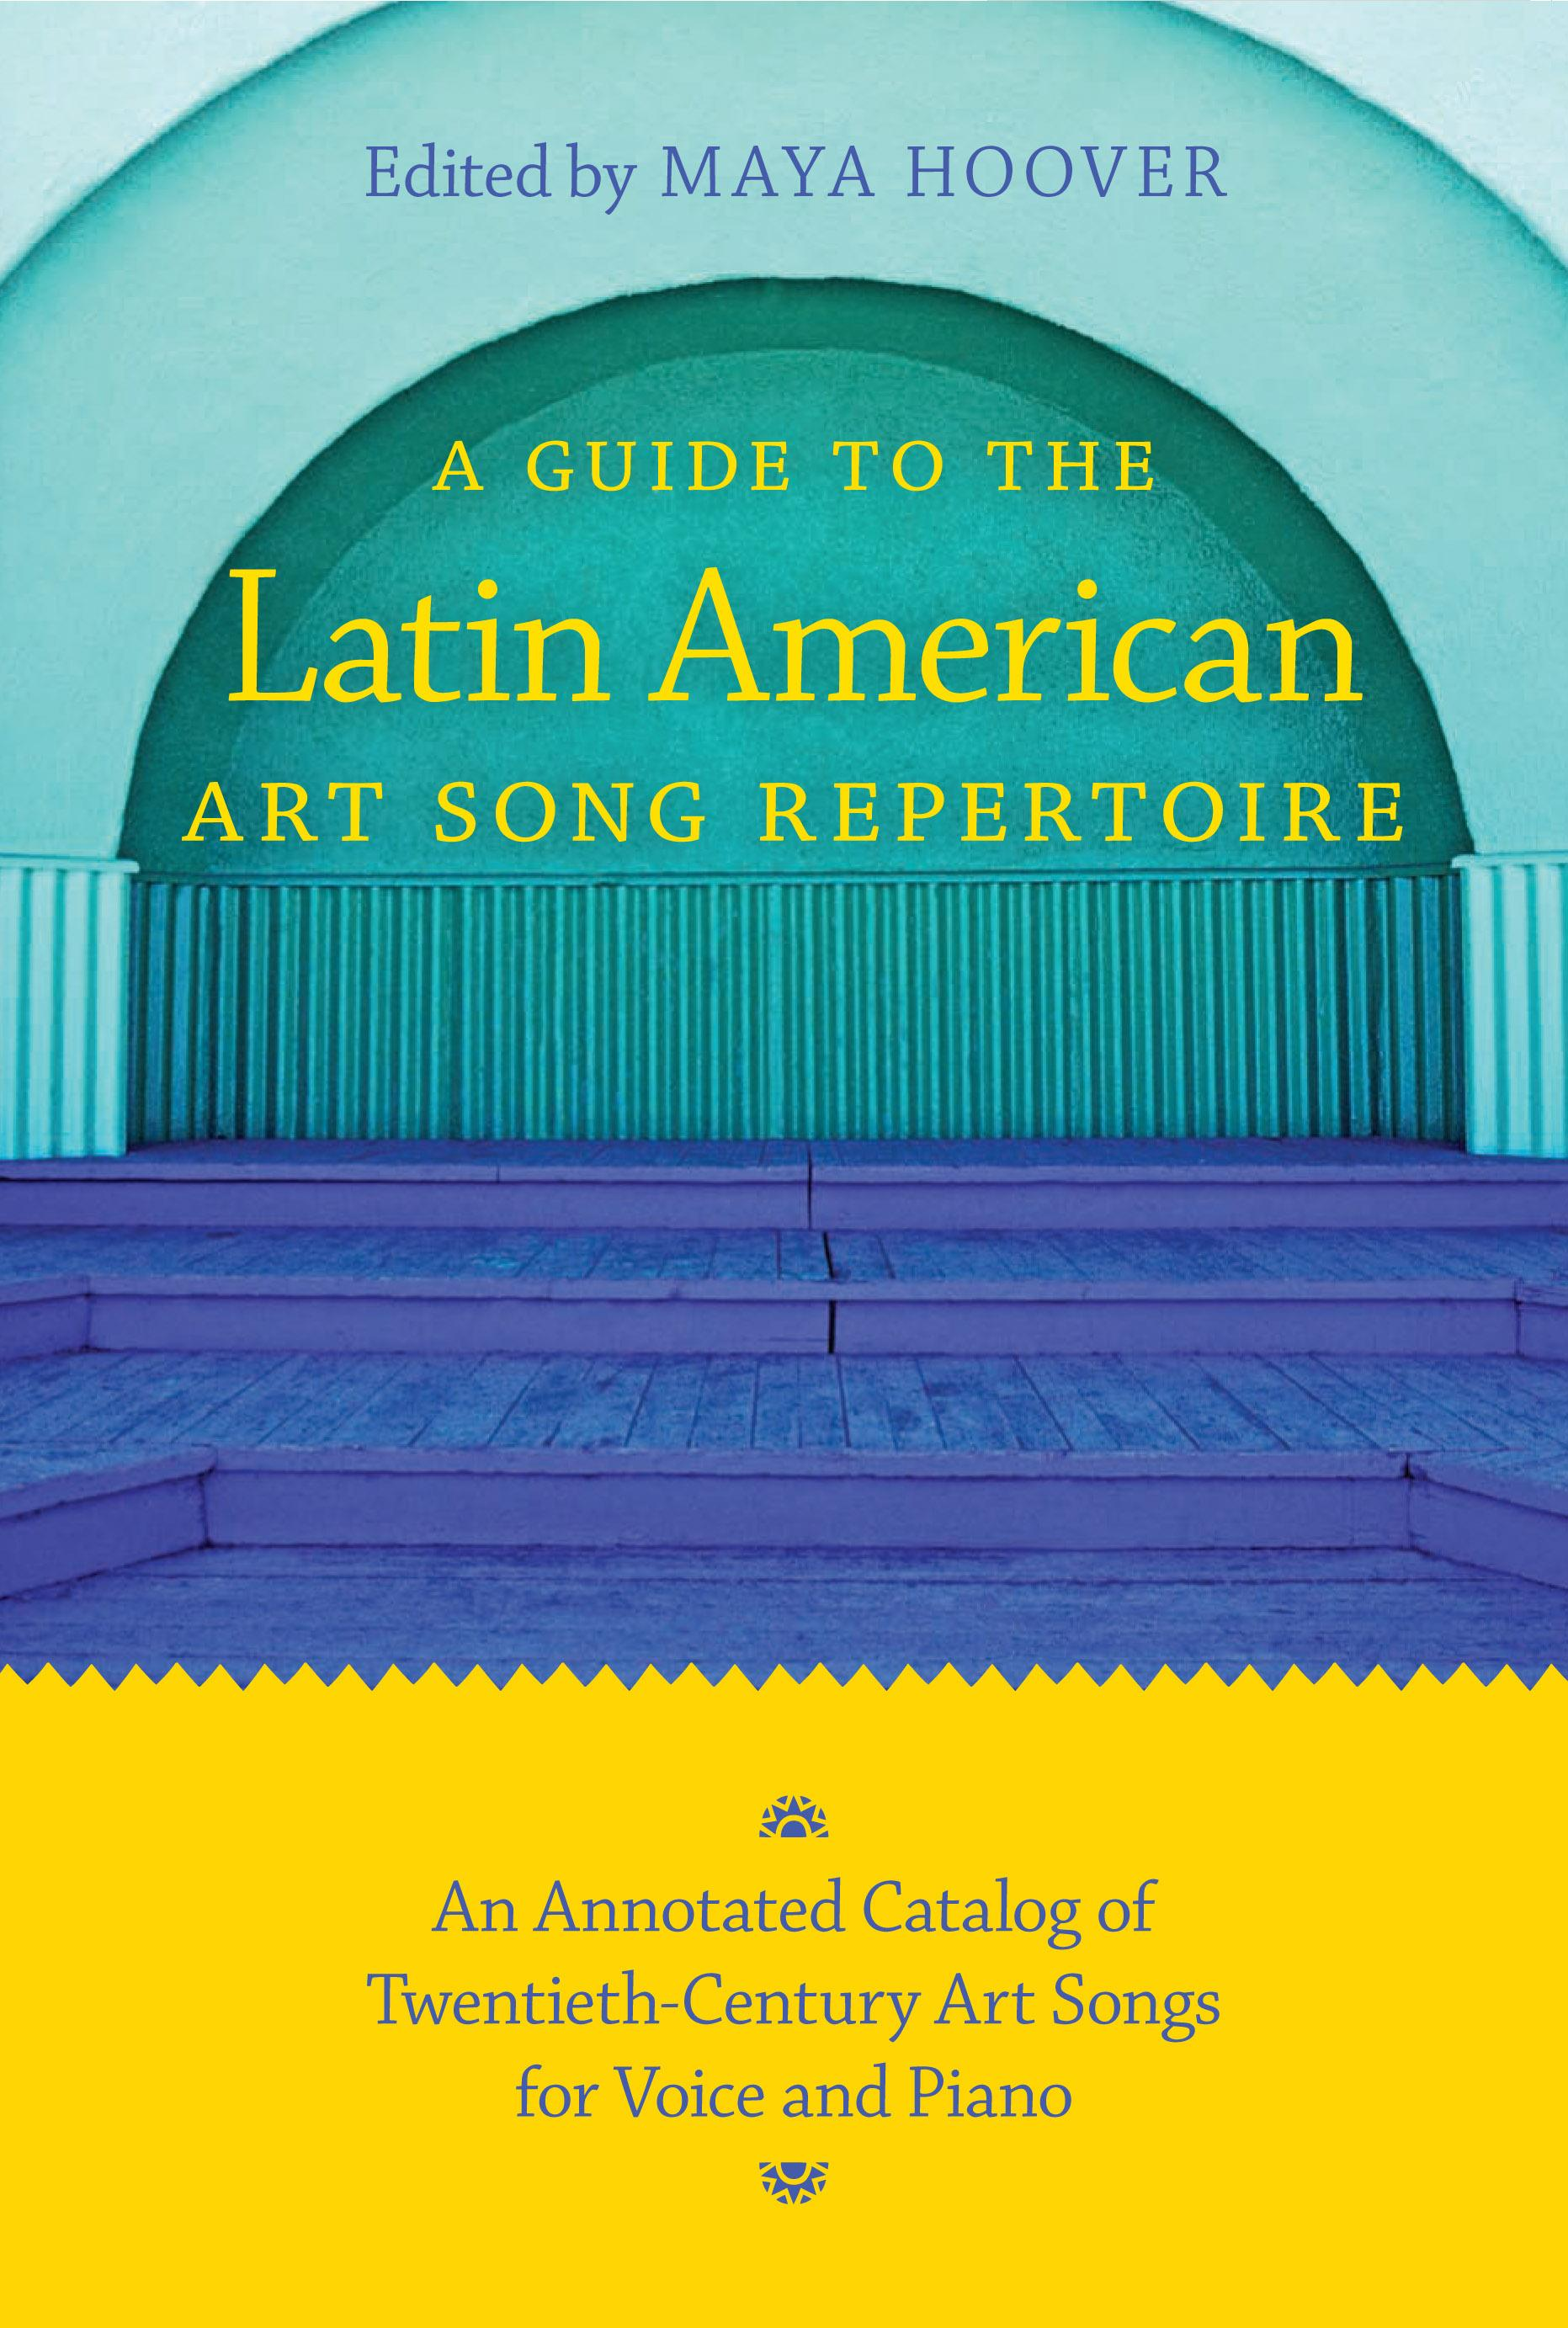 A Guide to the Latin American Art Song Repertoire: An Annotated Catalogue of Twentieth-Century Art Songs for Voice and Piano EB9780253003966